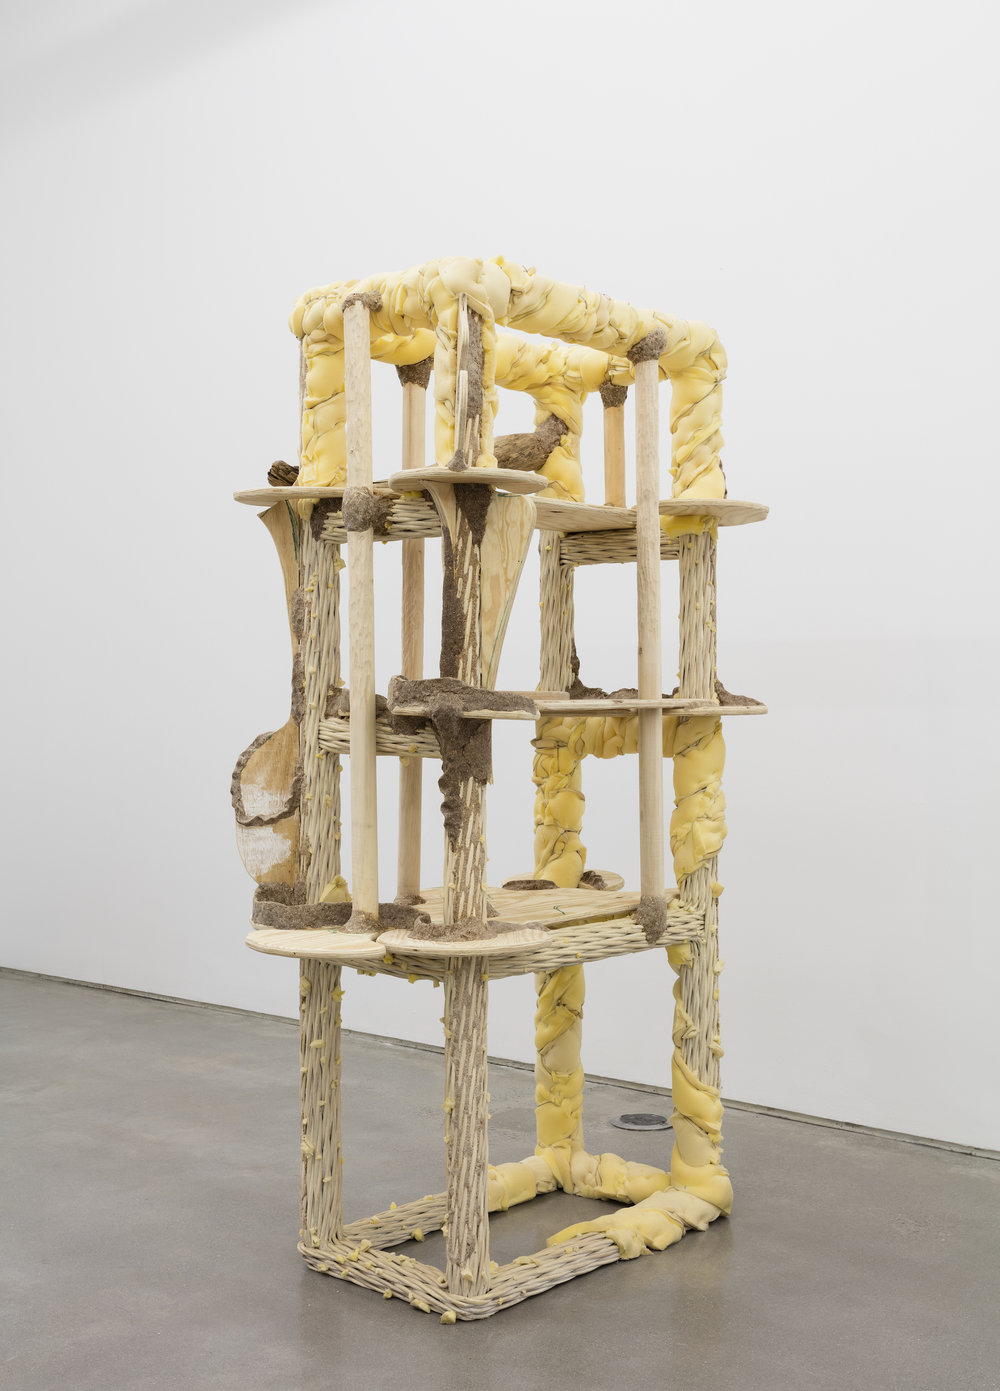 Deals 3 Damage (Wicker Shelf) 2016 Wood, wicker, plywood, studio dust, wood glue, polyurethane foam, ink, hardware 84 x 48 x 24 inches (213.36 x 121.92 x 60.96 cm)